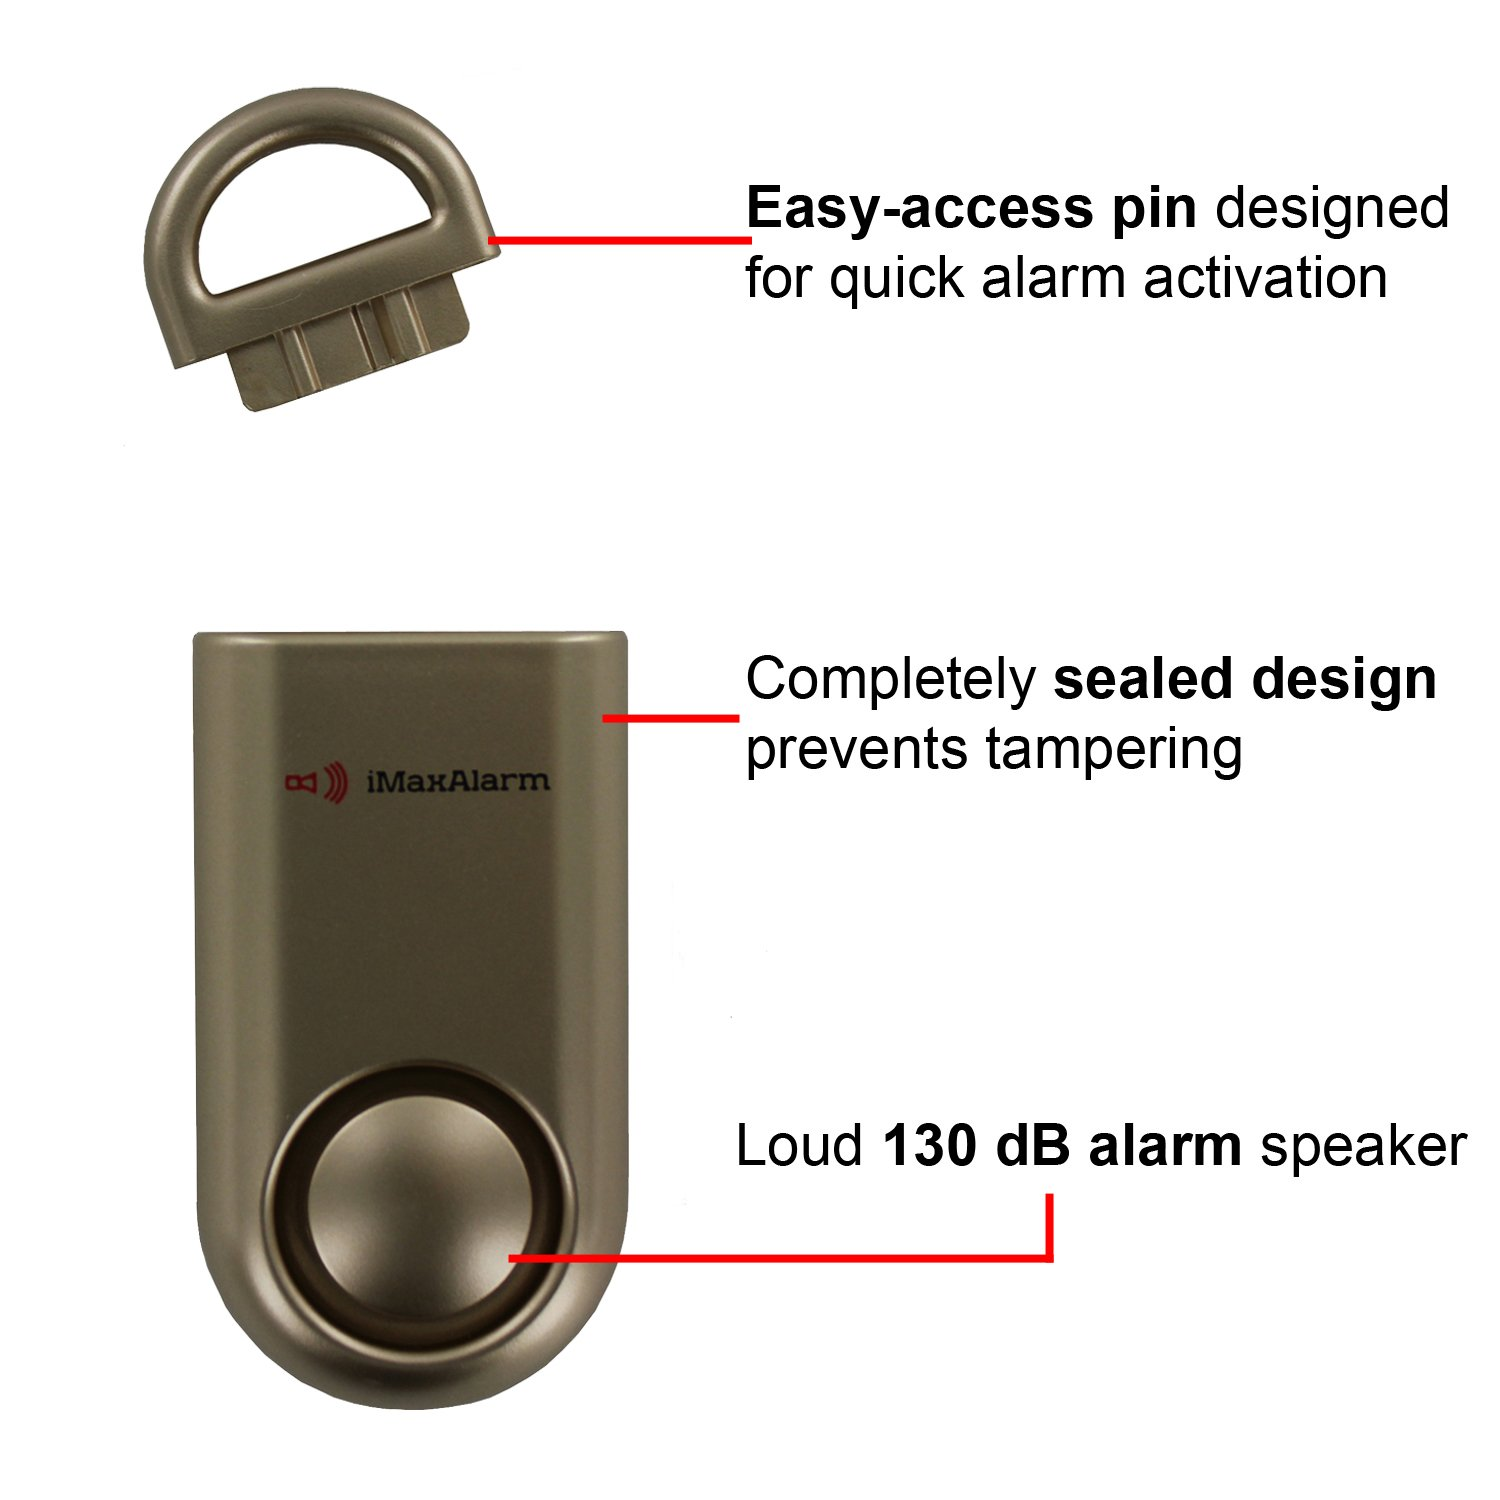 iMaxAlarm SOS Alert Personal Alarm - 130dB Alarm - Safety & Security Emergency Device - Gold by iMaxAlarm (Image #2)